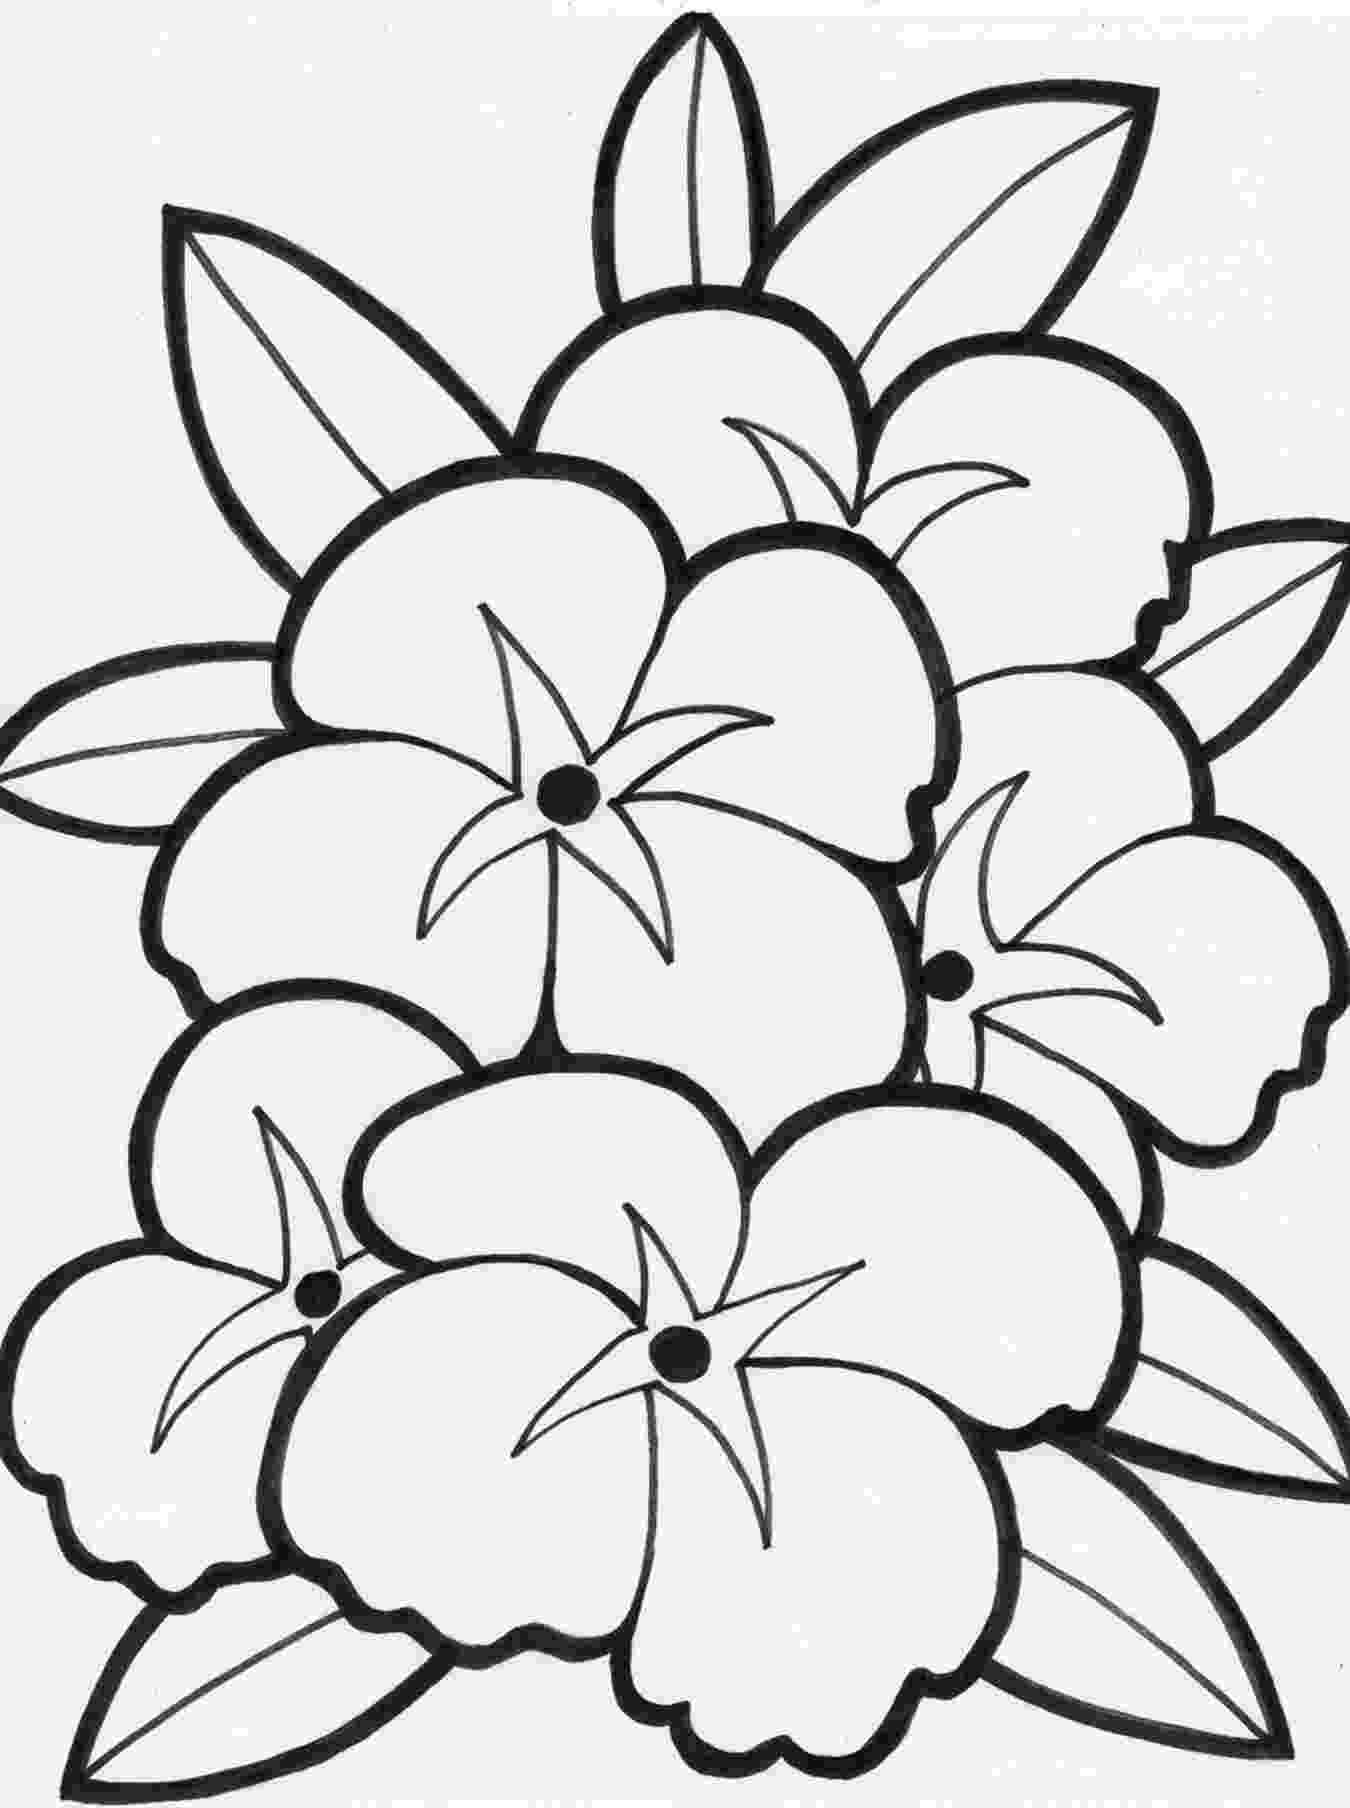 flower printouts free printable flower coloring pages for kids best printouts flower